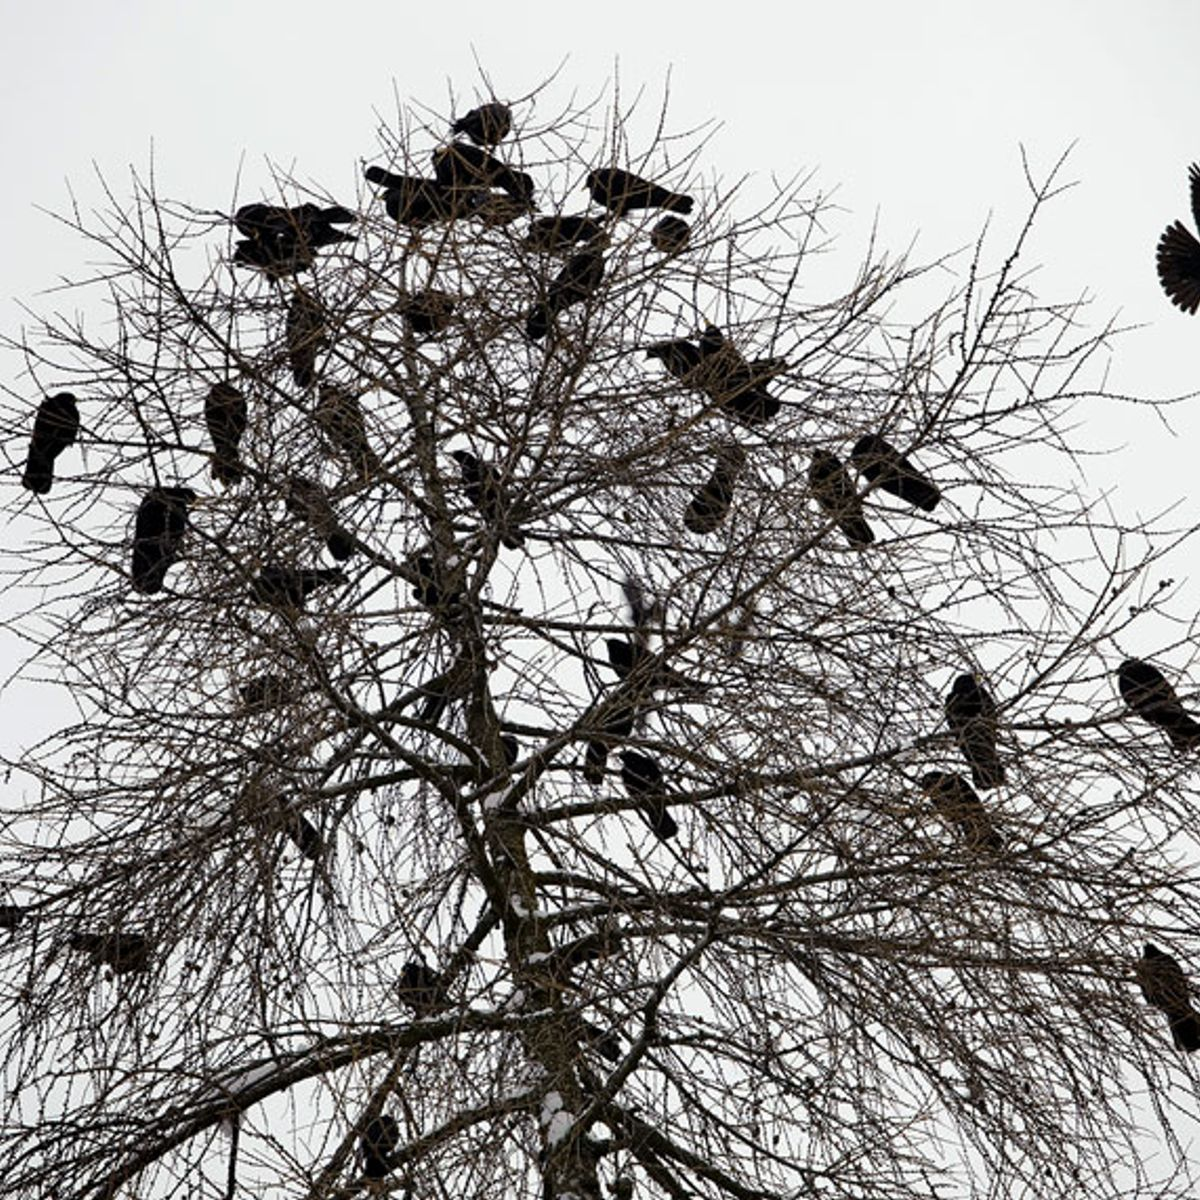 Jackdaw birds can tell humans apart — and remember which ones are violent